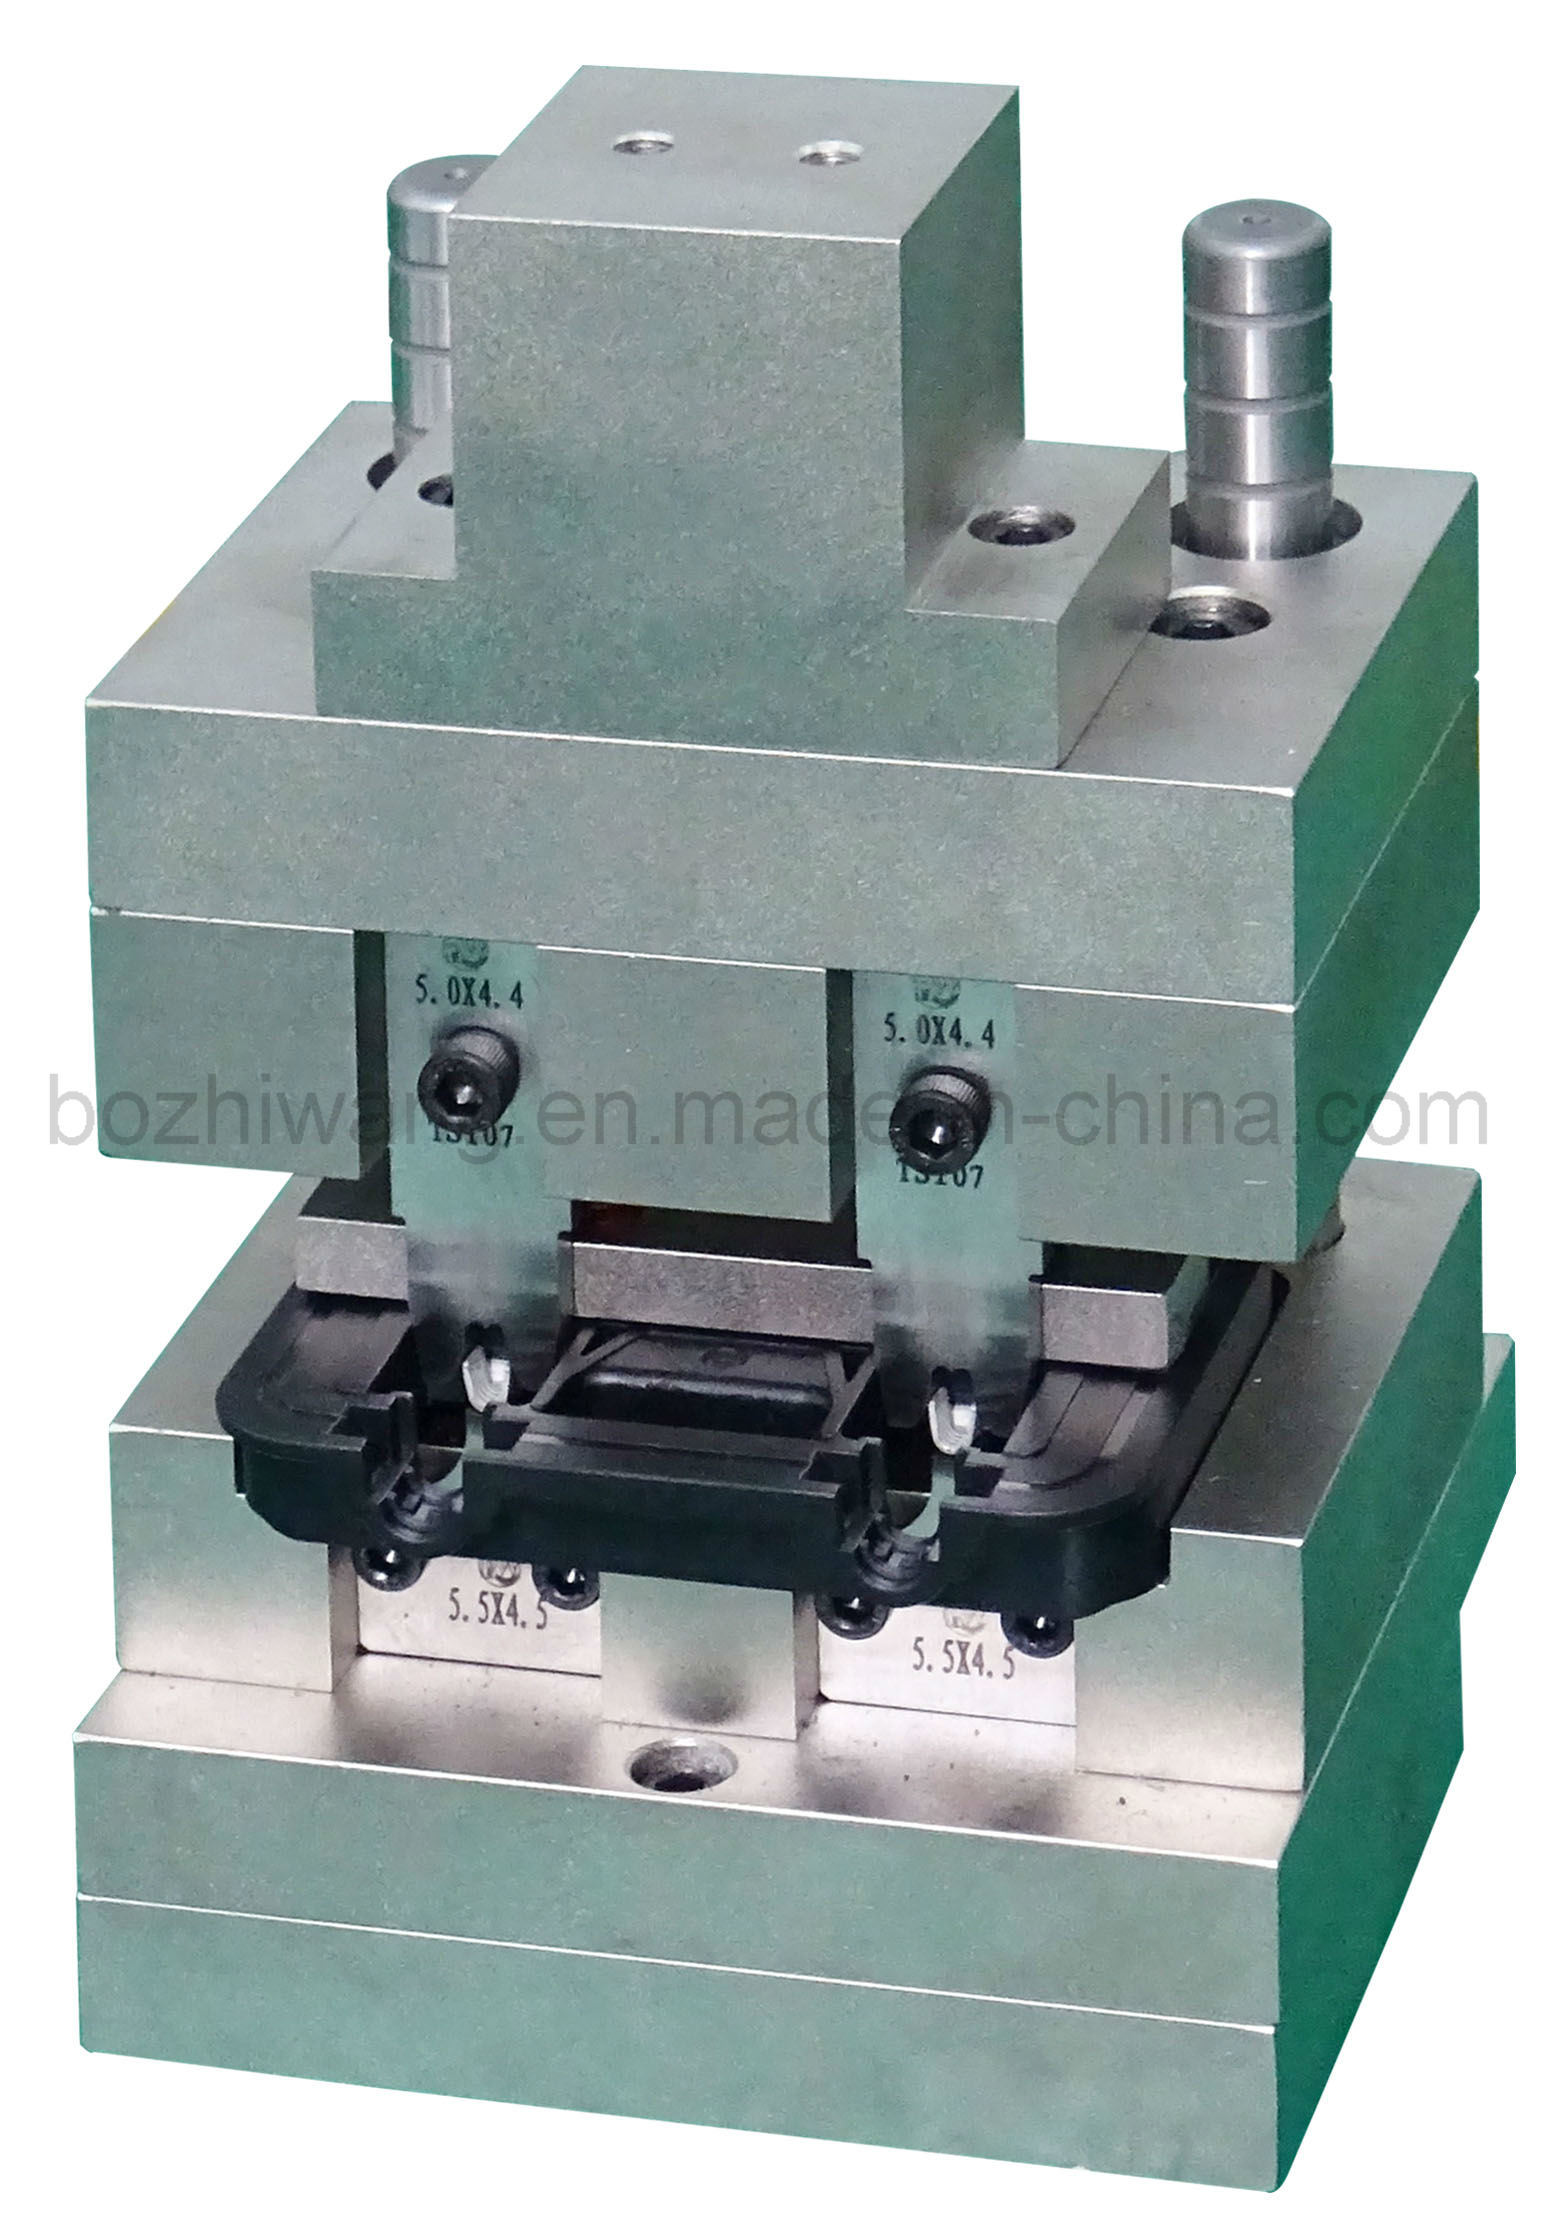 Servo Double Position Crimping Machine for Jb Box